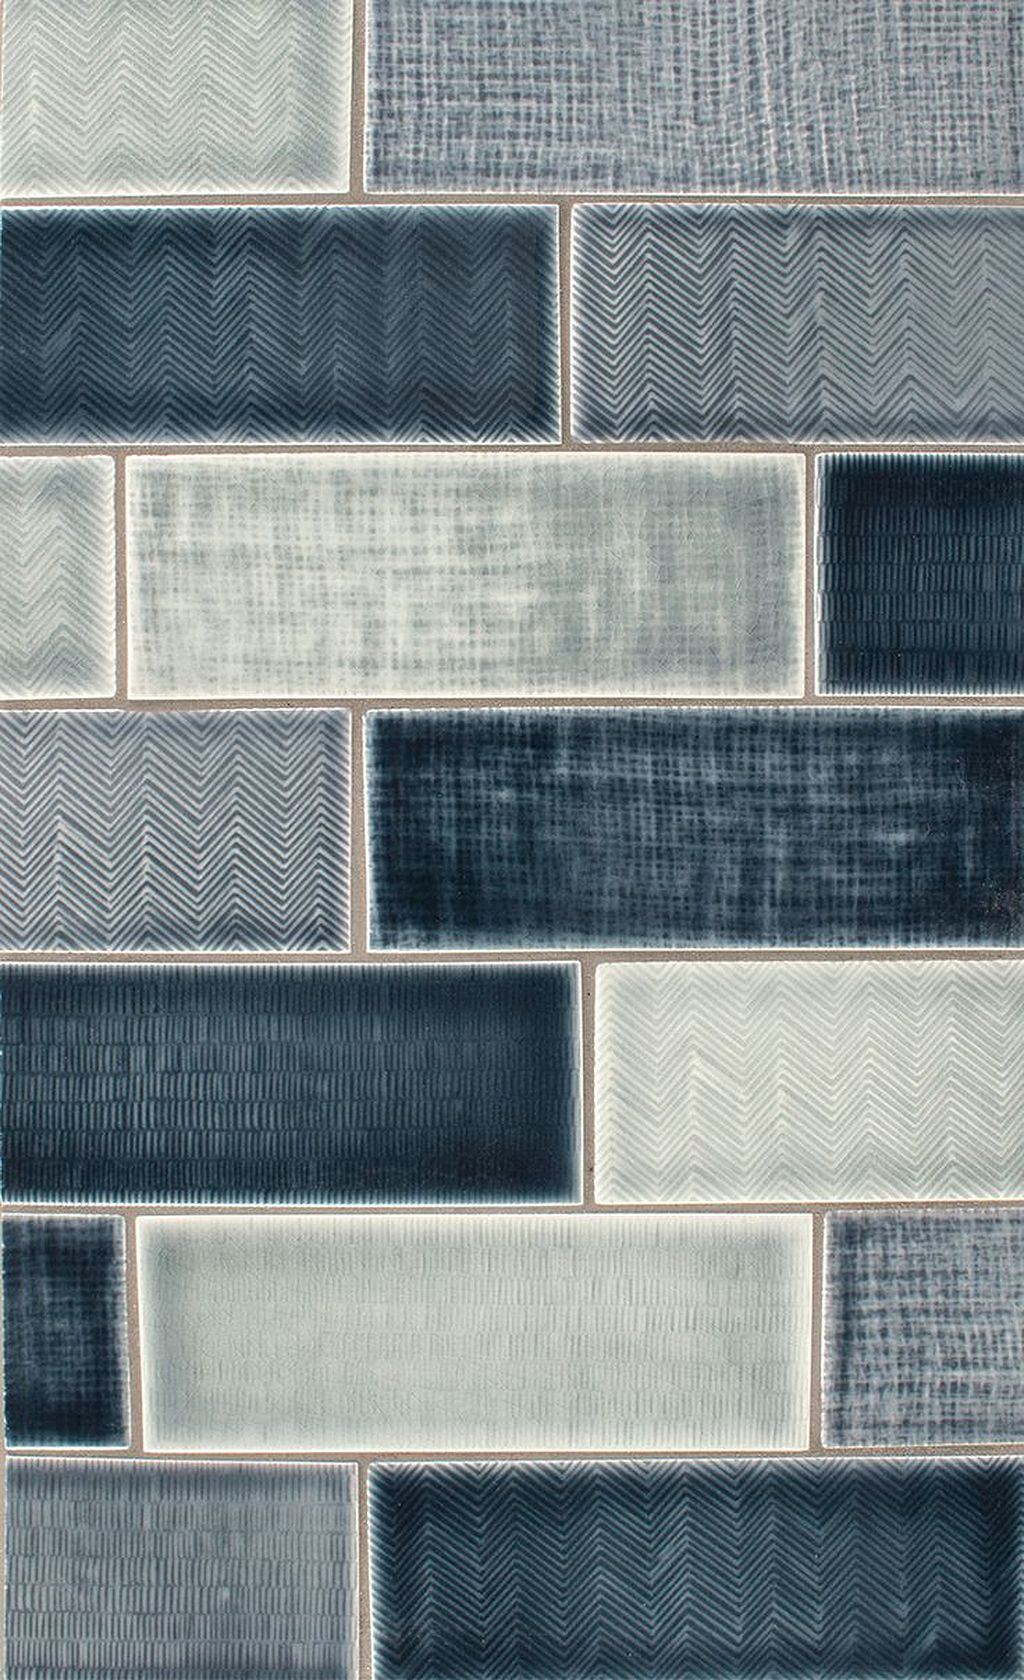 Awesome Wall And Floor Tile Texture Ideas リノベーション タイル タイル デザイン タイル 柄